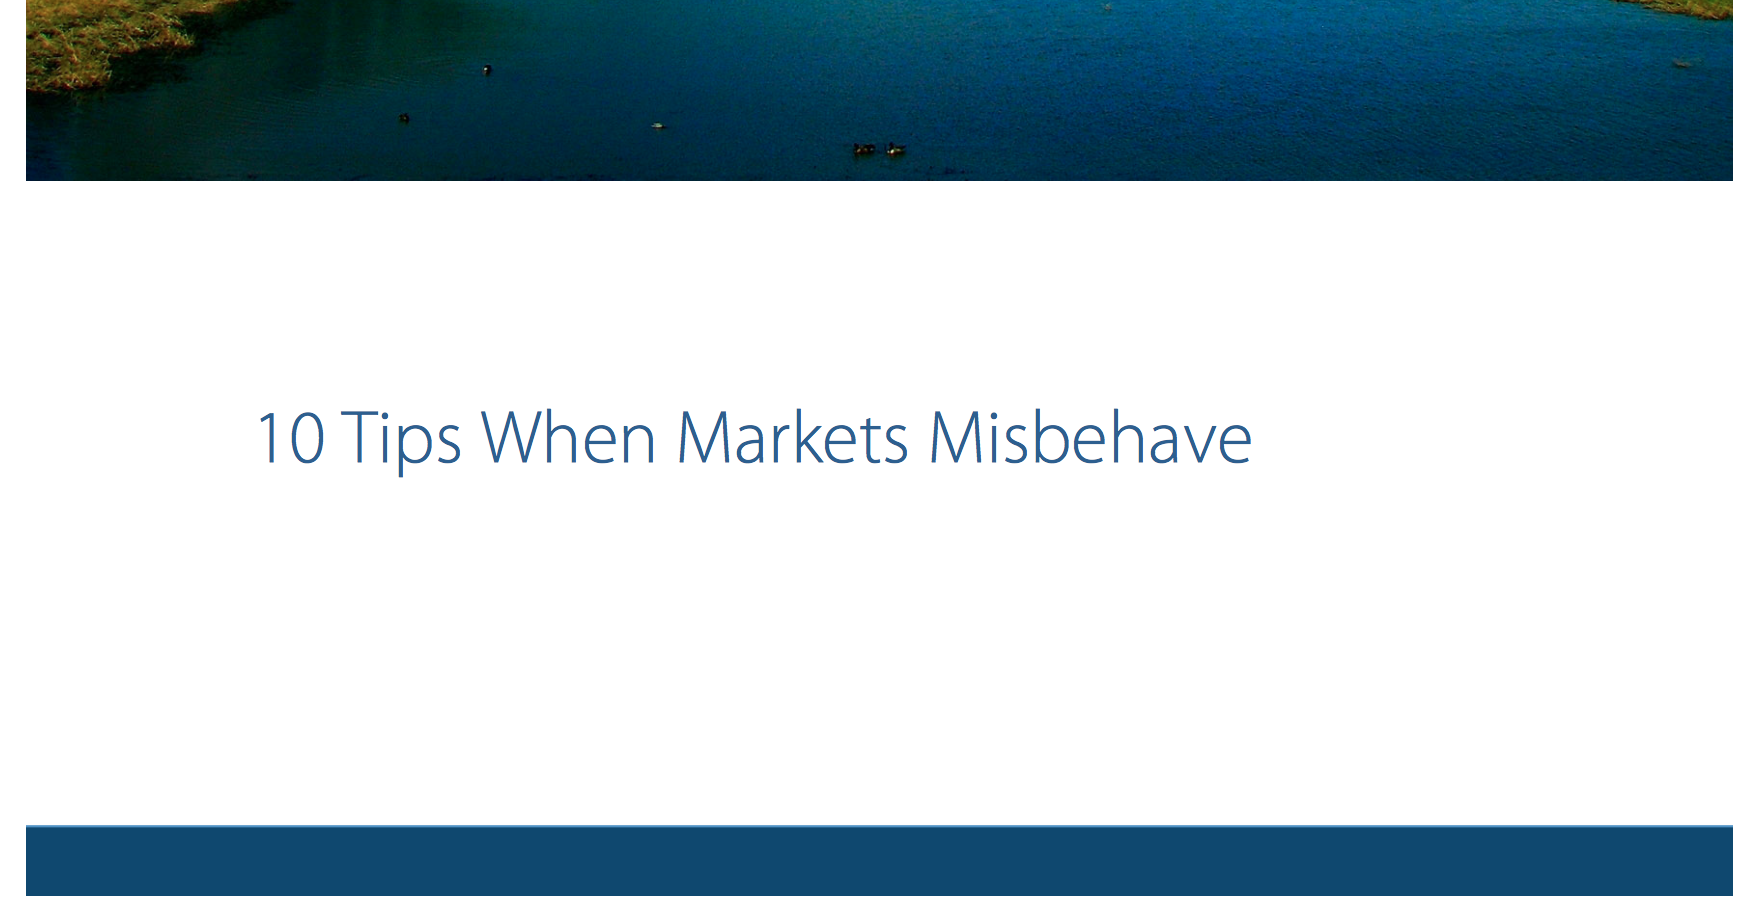 10 Tips When the Markets Misbehave Thumbnail